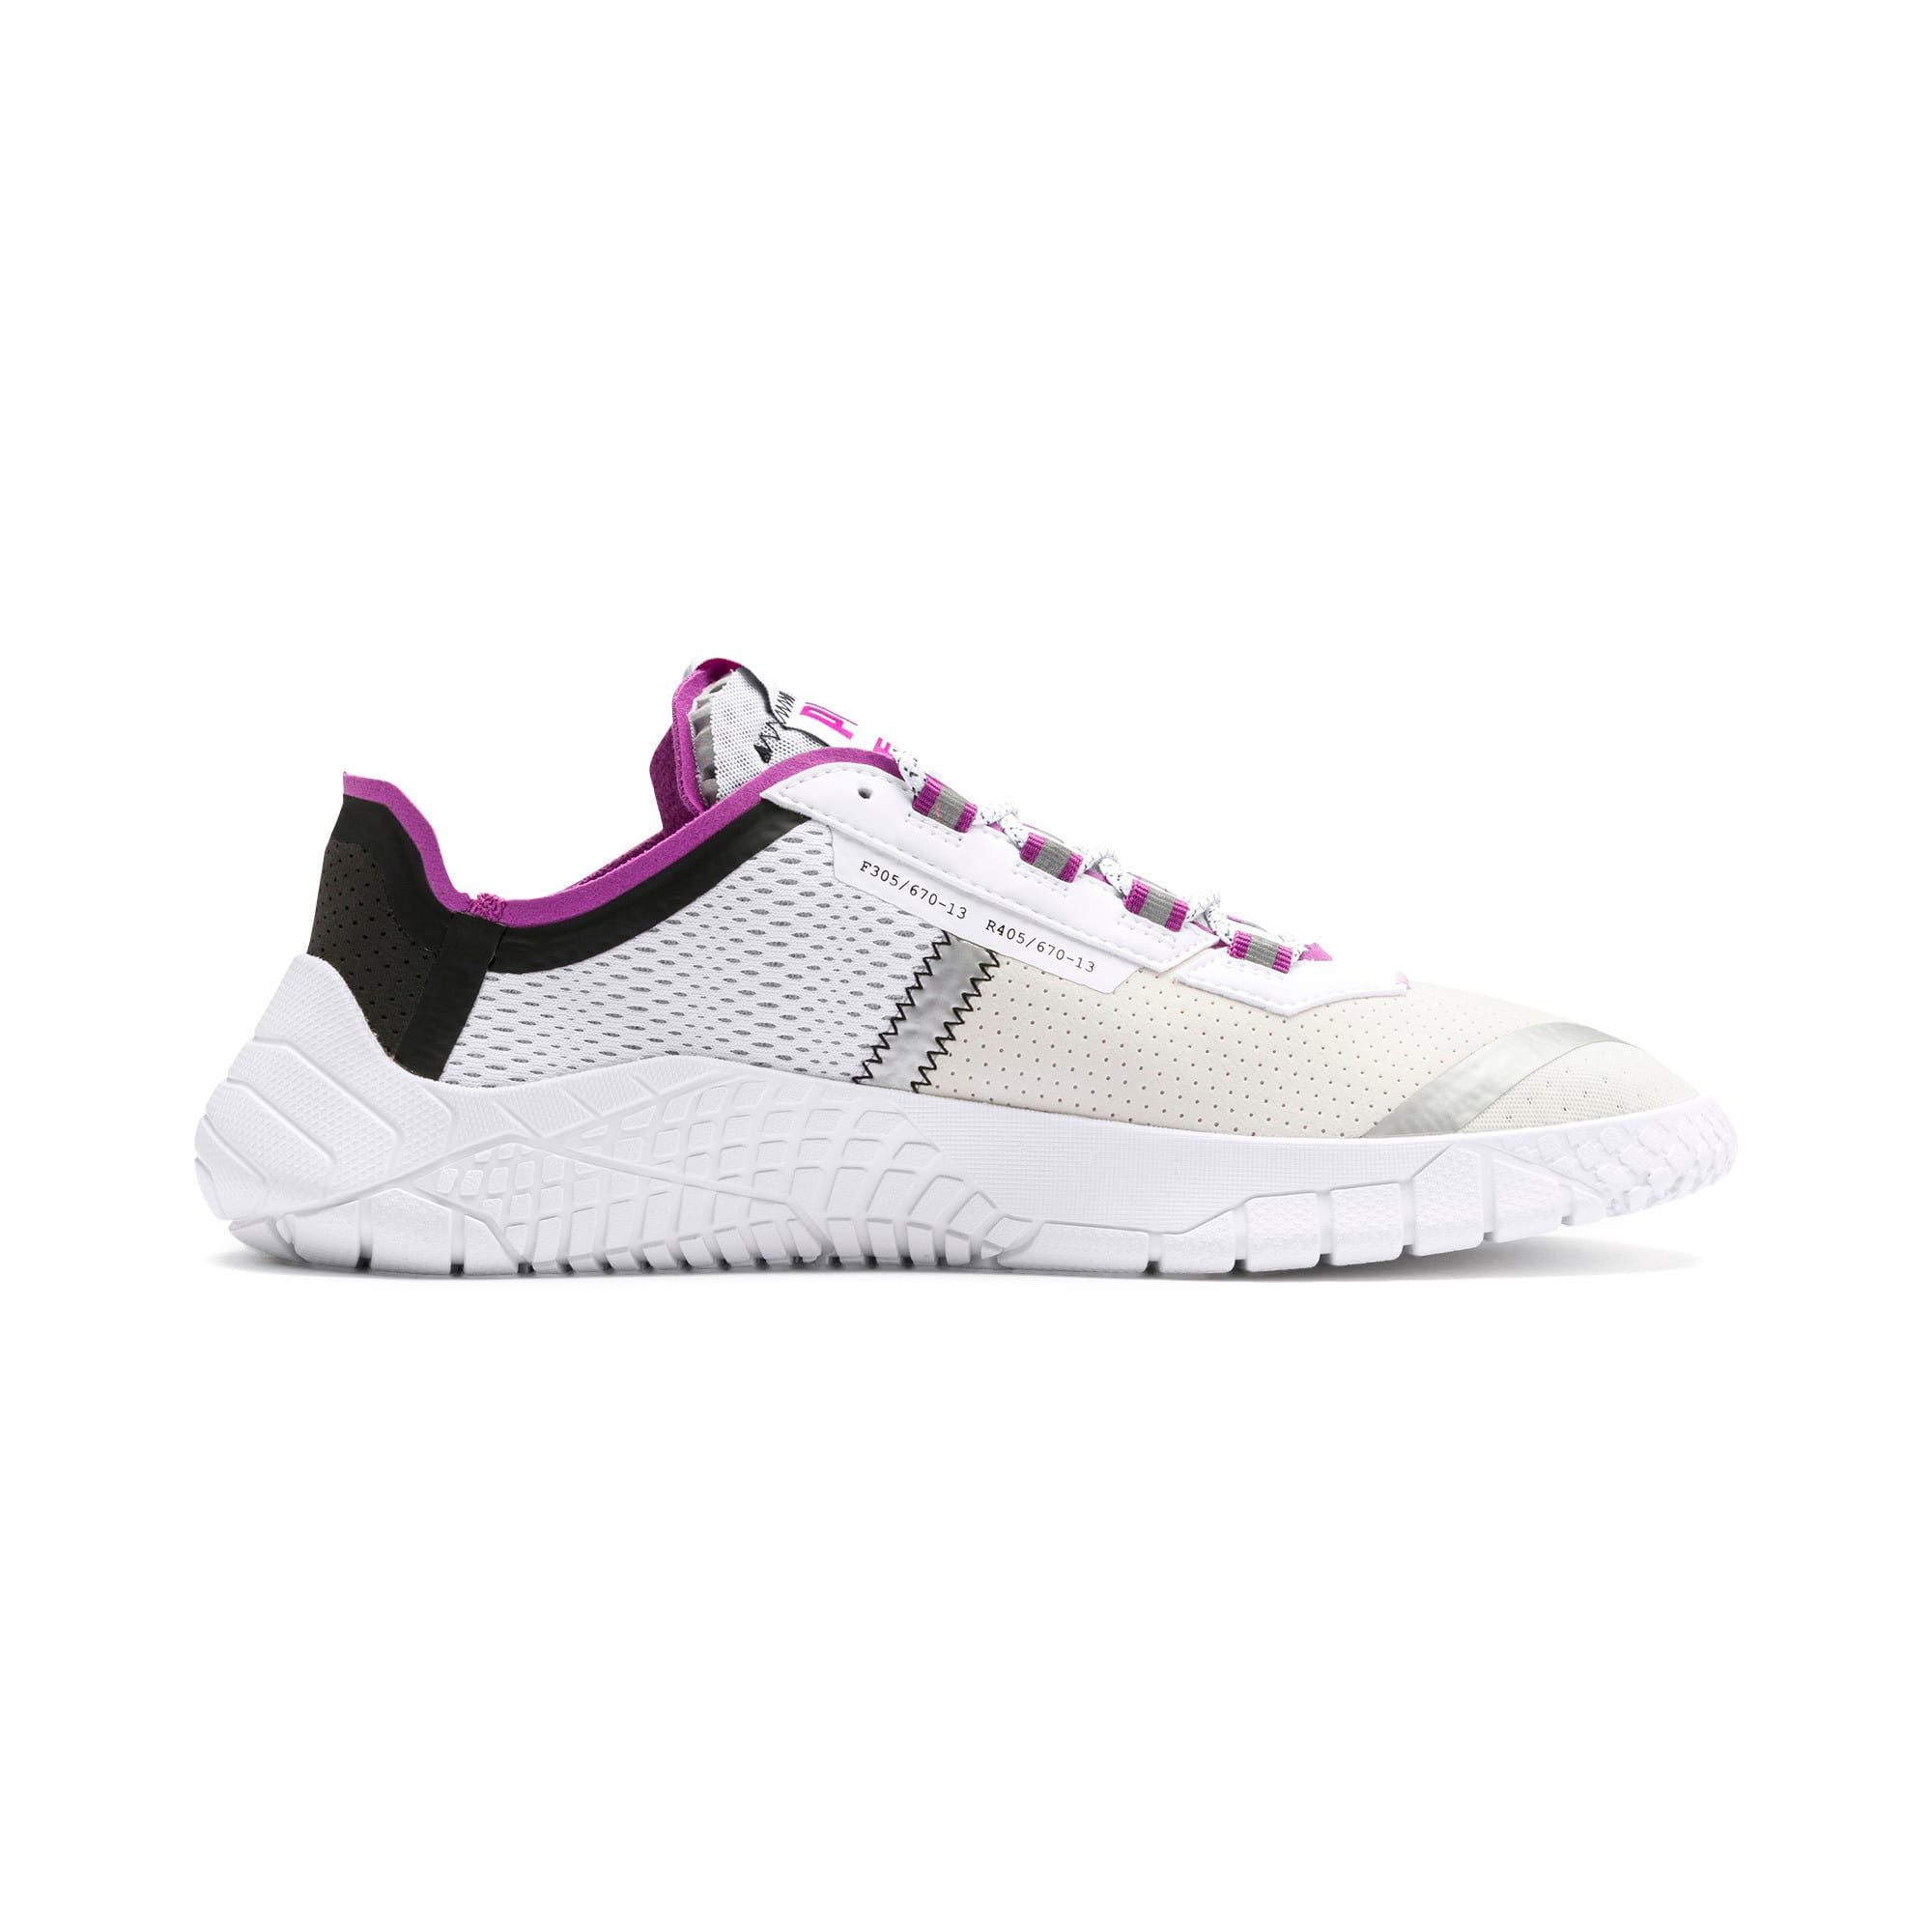 Thumbnail 6 of Pirelli Replicat-X Trainers, White-Hyacinth Viol-Red, medium